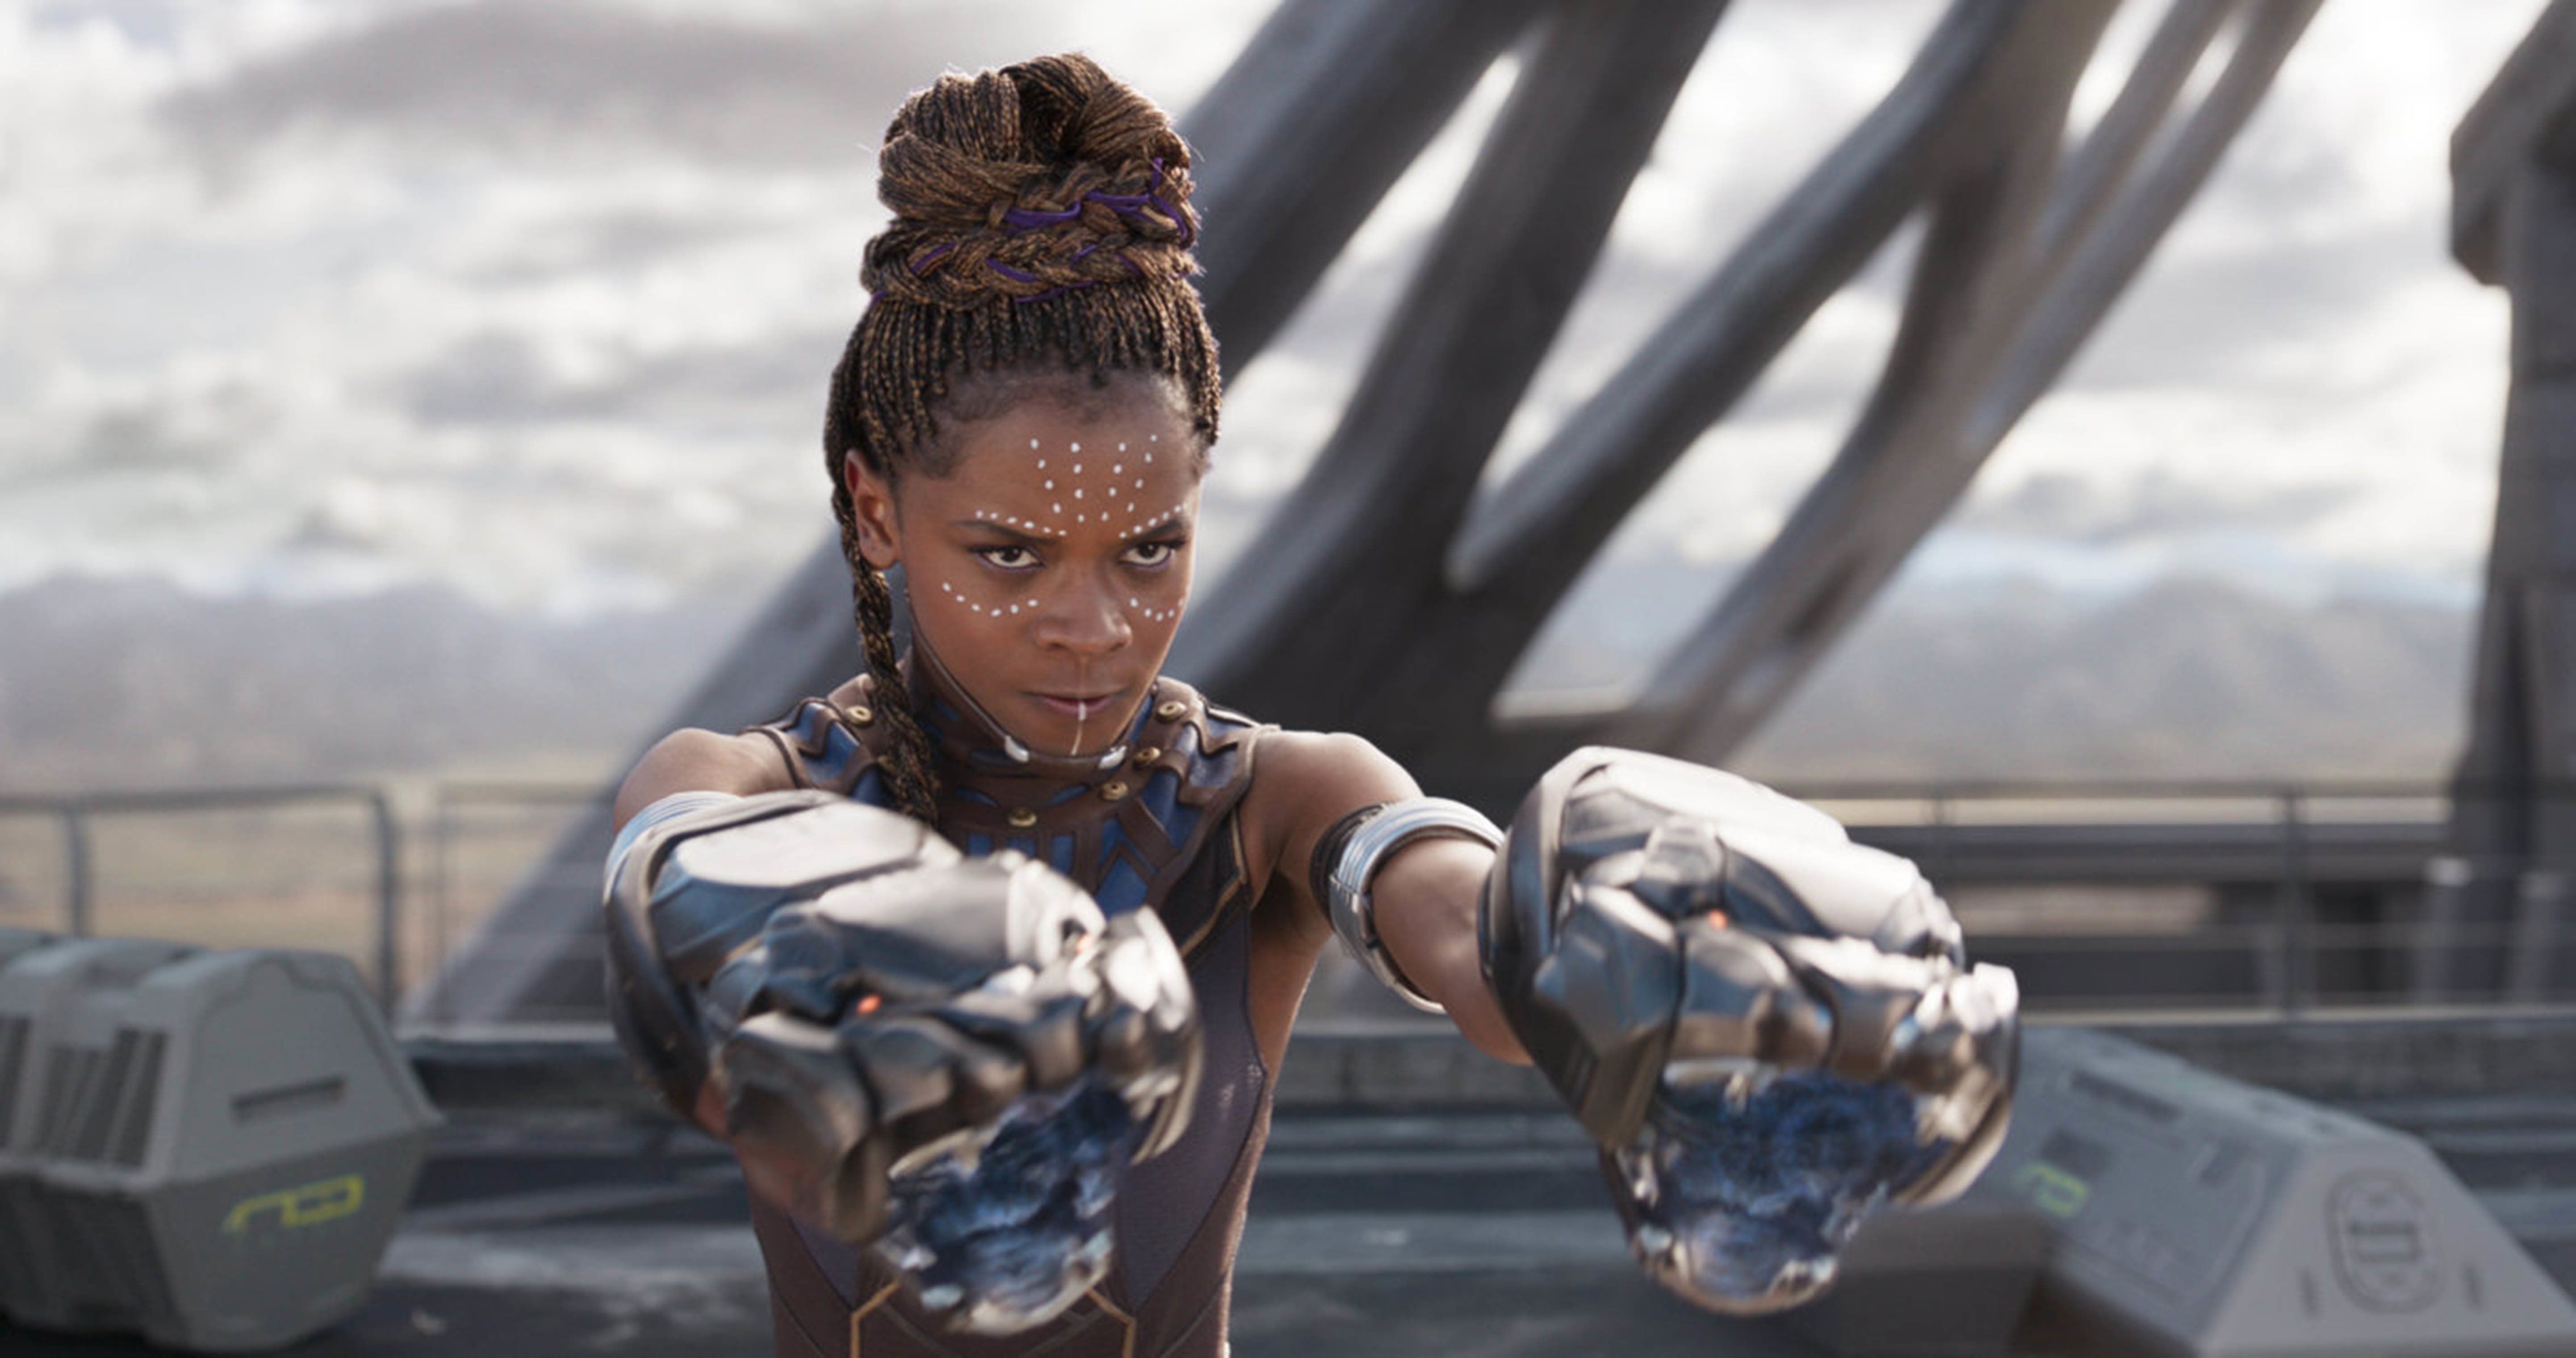 Get To Know Letitia Wright, The 'Black Panther' Star Everyone Is Going To Be Talking